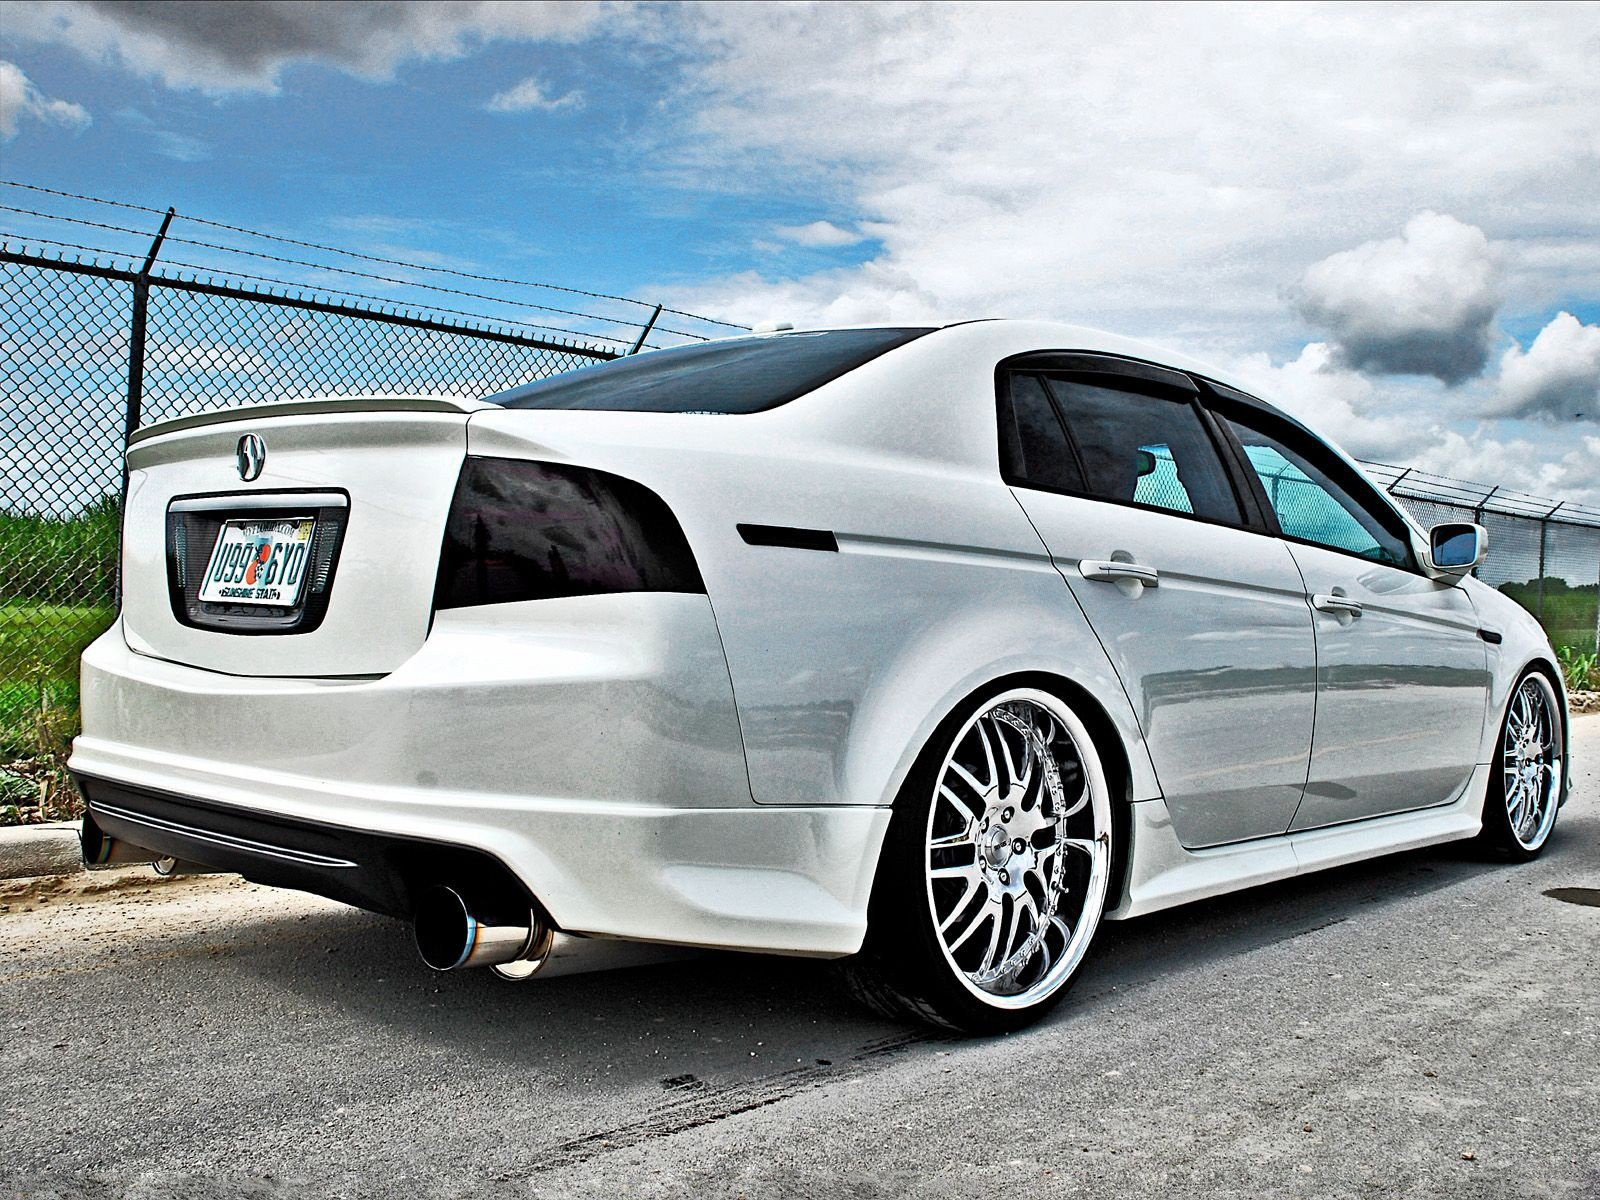 Acura TL Wallpapers 1080p 672TN15 WallpapersExpertcom 1600x1200